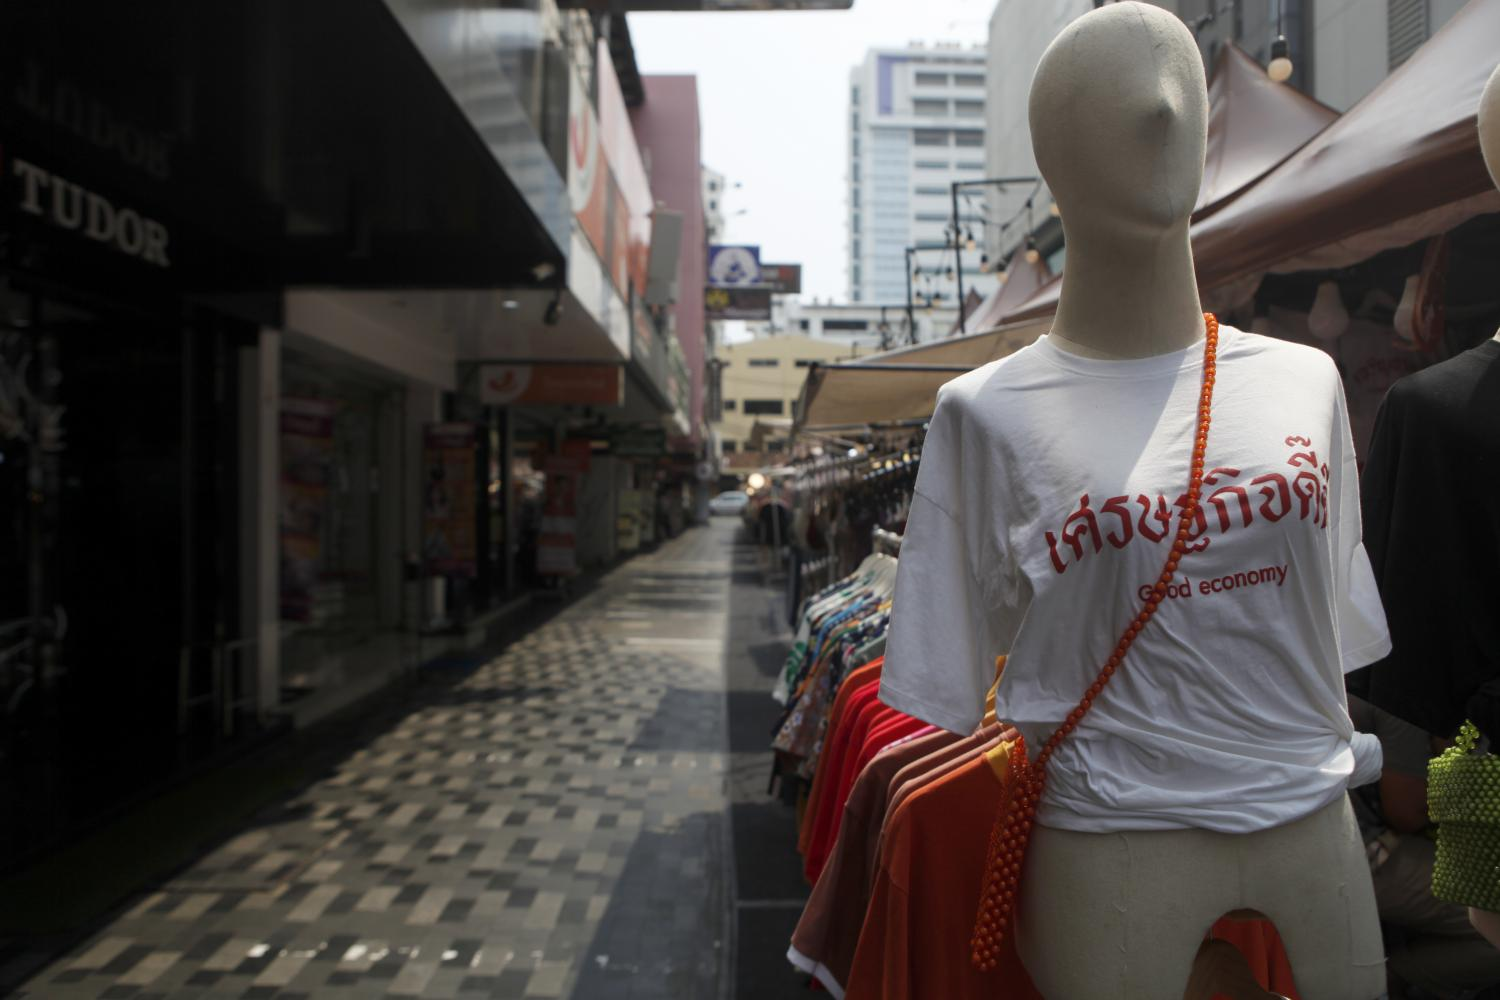 A mannequin wearing a T-shirt that says 'Settakij Dee Dee', which means 'good economy' in English.(Photo by Nutthawat Wicheanbut)